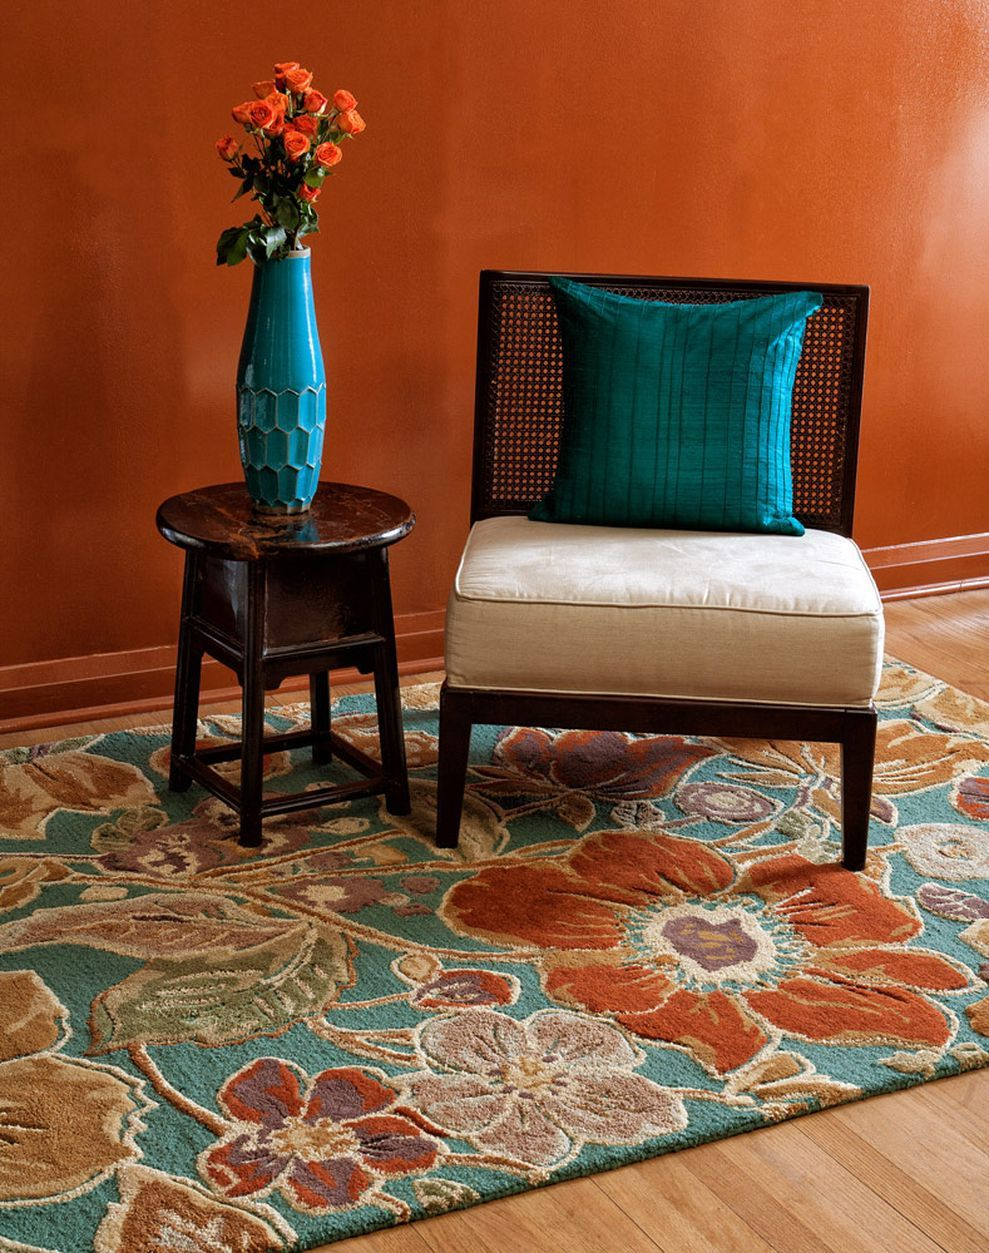 53 Adorable Burnt Orange And Teal Living Room Ideas Around The